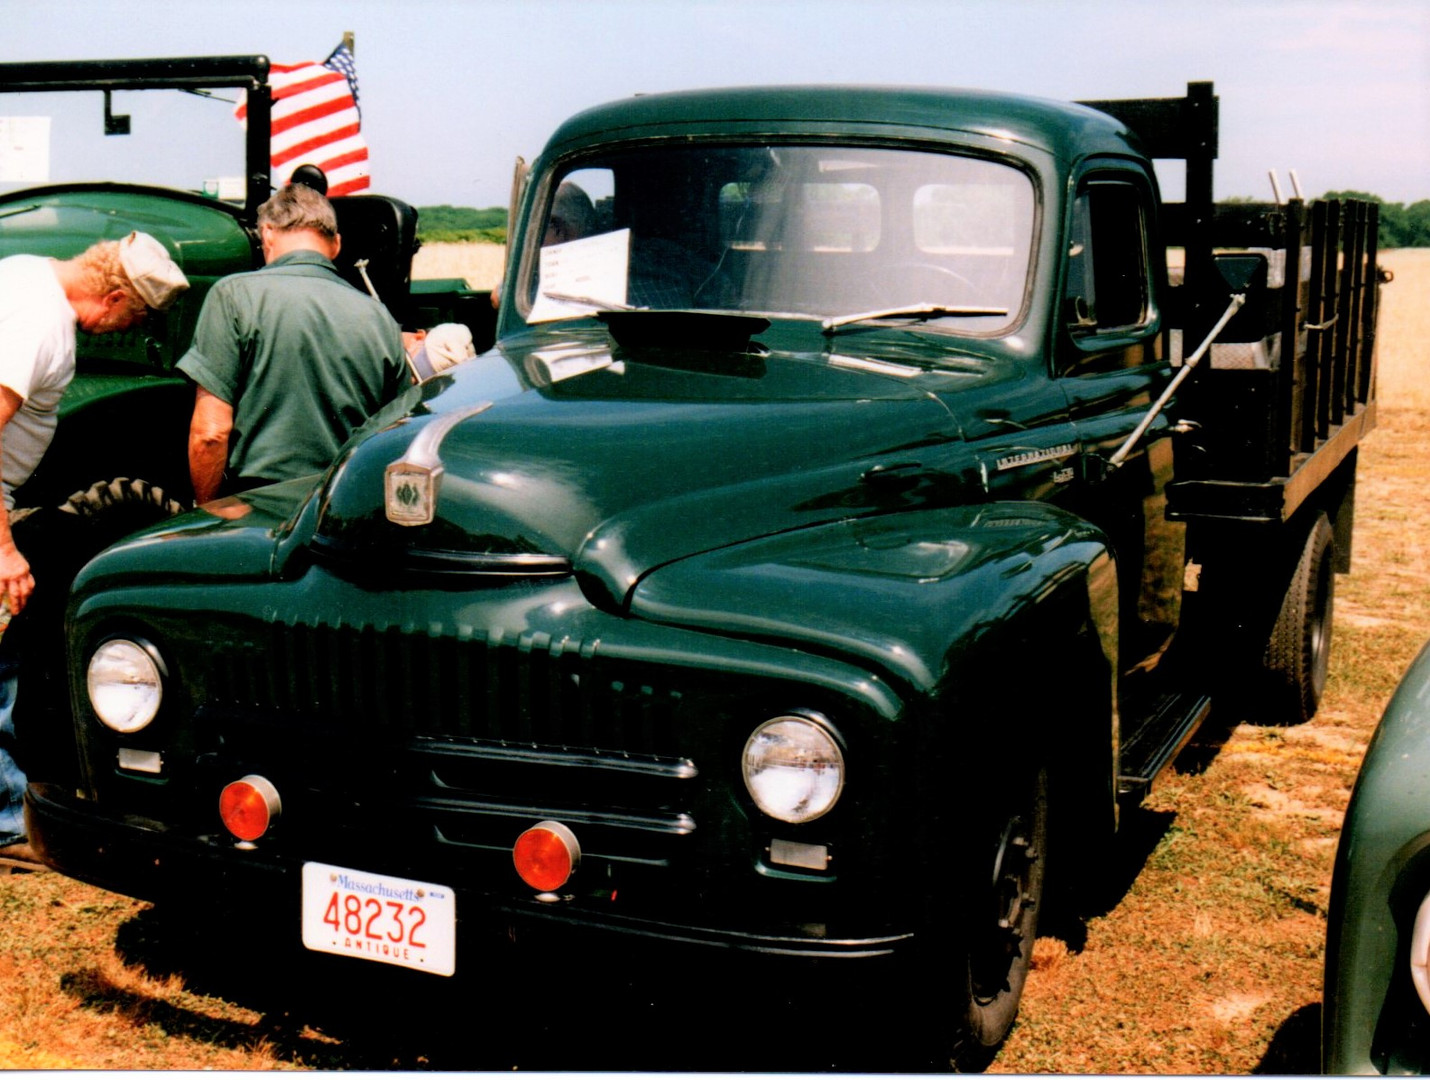 1951 International L-130 stake bed from Massachusetts